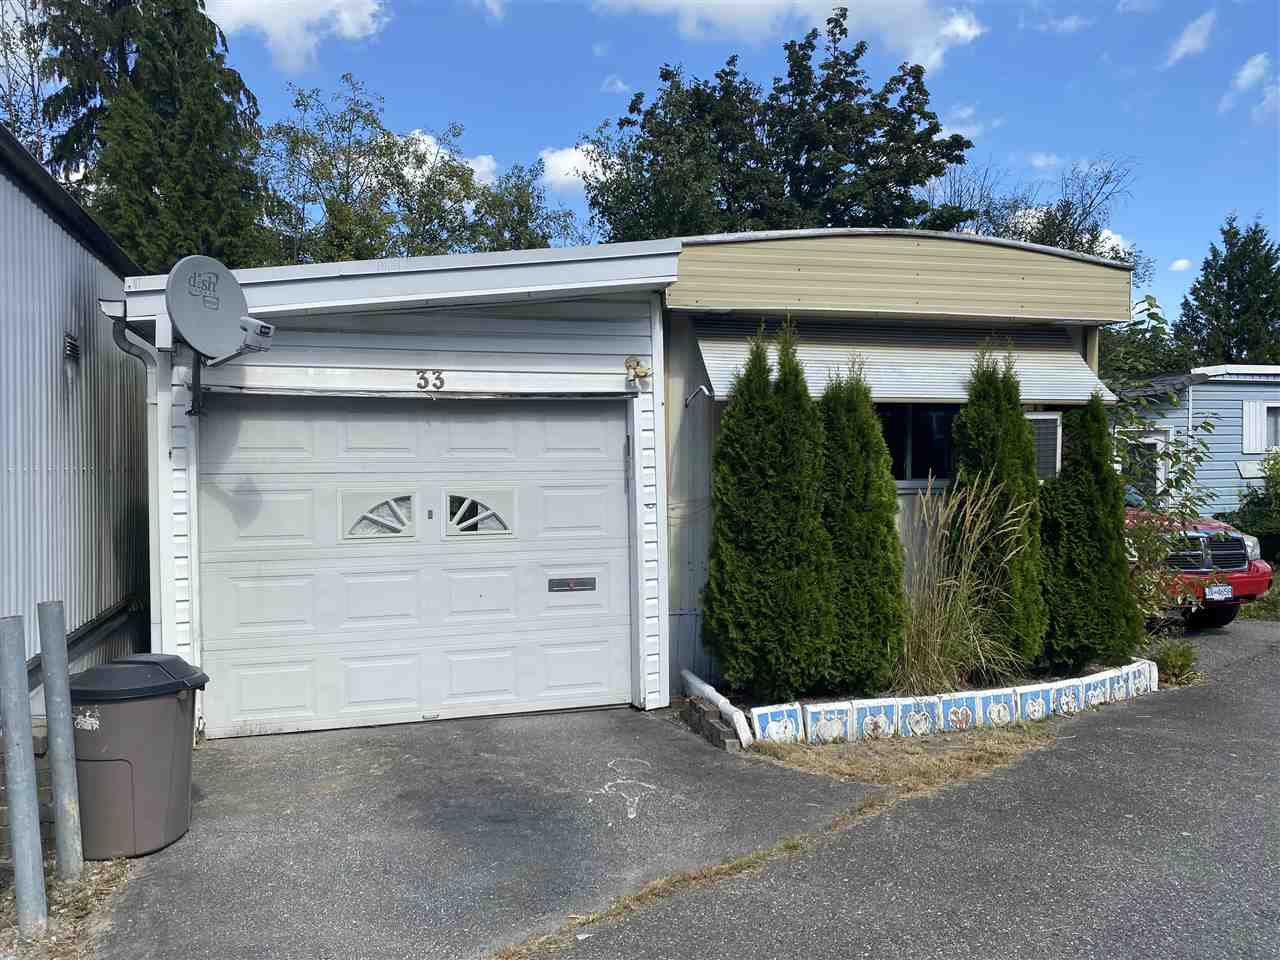 "Main Photo: 33 4200 DEWDNEY TRUNK Road in Coquitlam: Ranch Park Manufactured Home for sale in ""HIDEAWAY PARK"" : MLS®# R2490732"